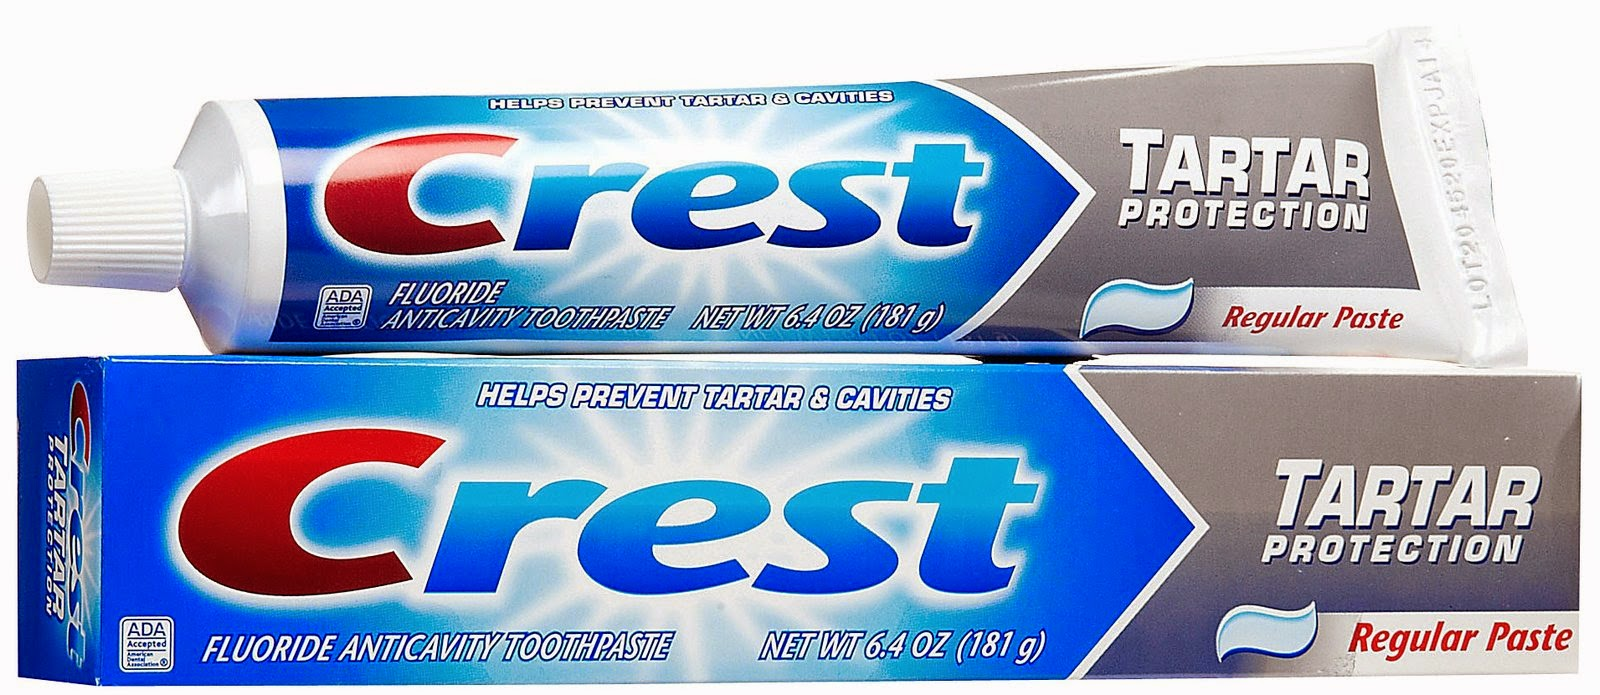 Crest Tartar Control Toothpaste – (Procter & Gamble. Inc.)